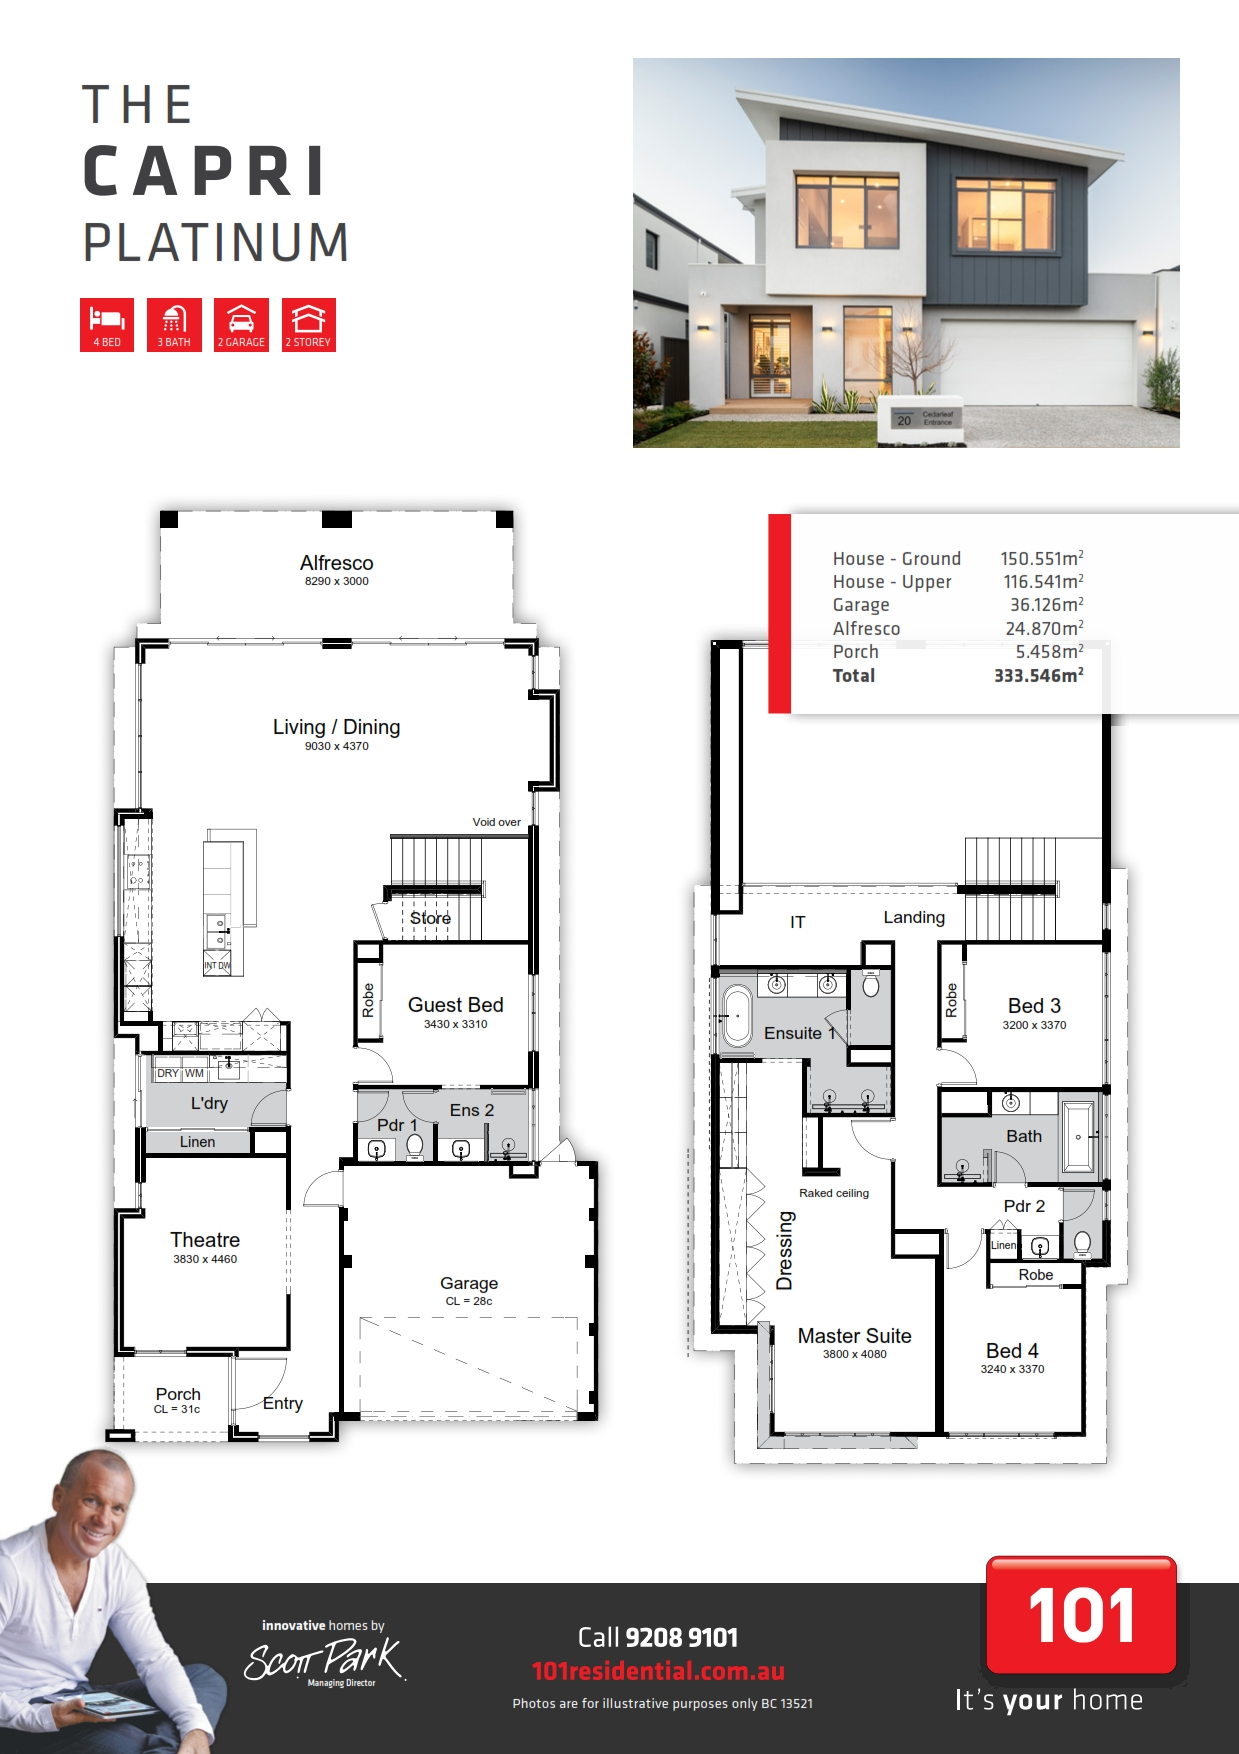 101 A4 Floor Plan - Capri Platinum WEB_001